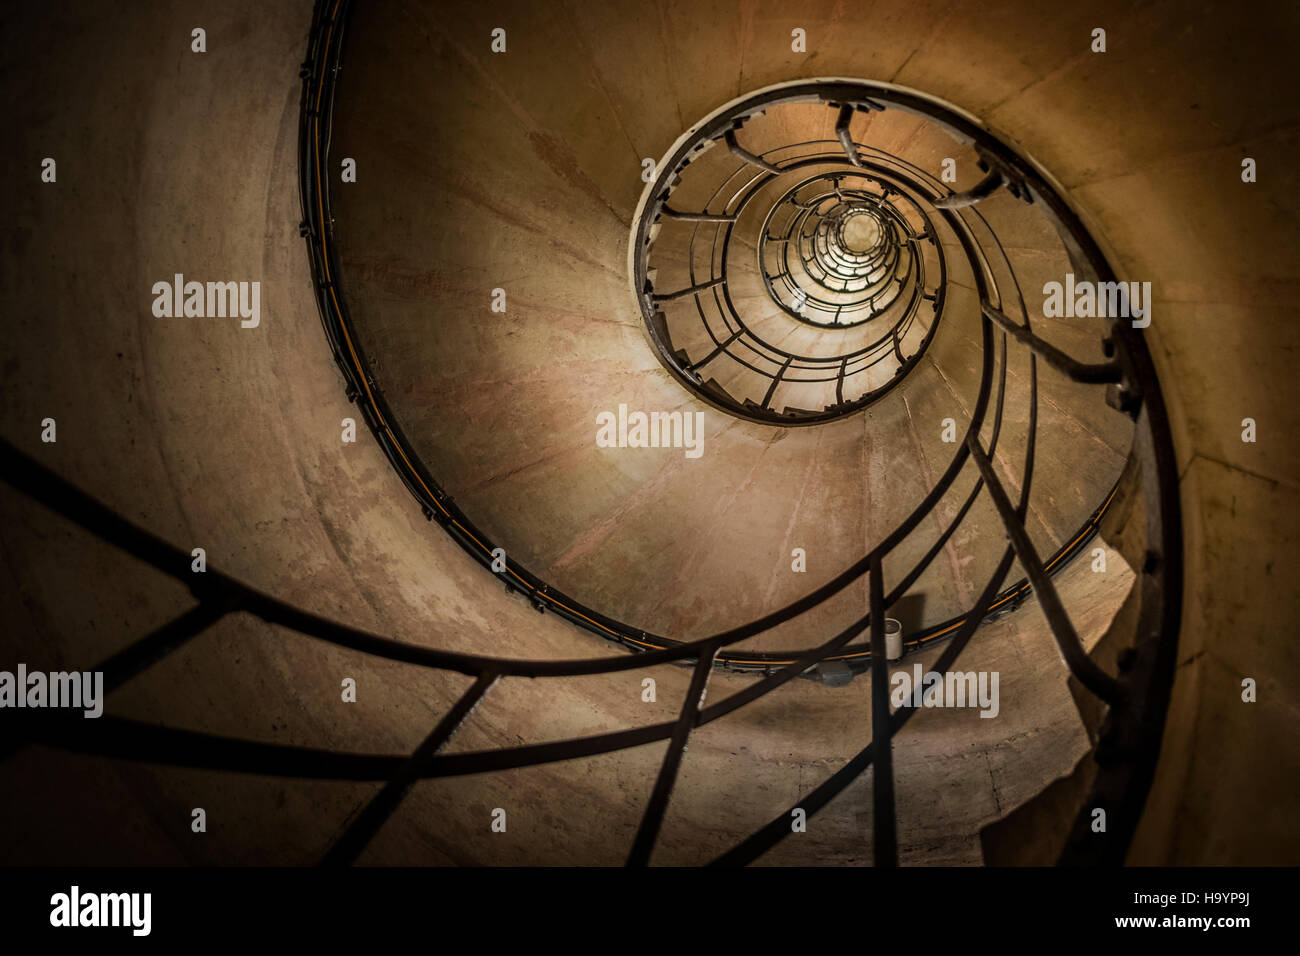 Looking up one of the spiral stairs of the Arc de Triomphe, Paris - Stock Image